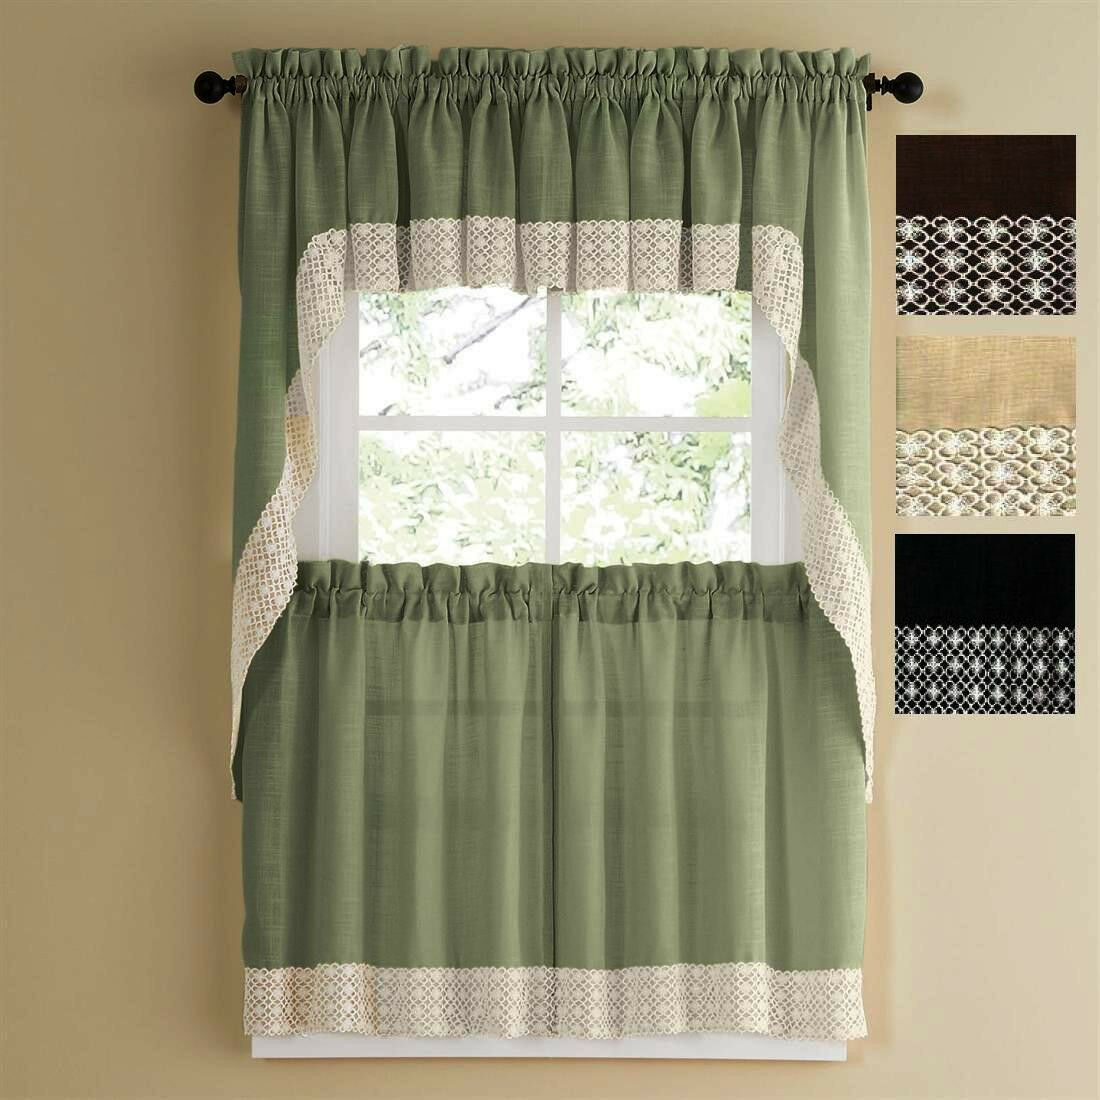 Primary image for SALEM SOLID COLOR TIER CURTAIN and SWAG TOP WITH WHITE DAISY LACE TRIM